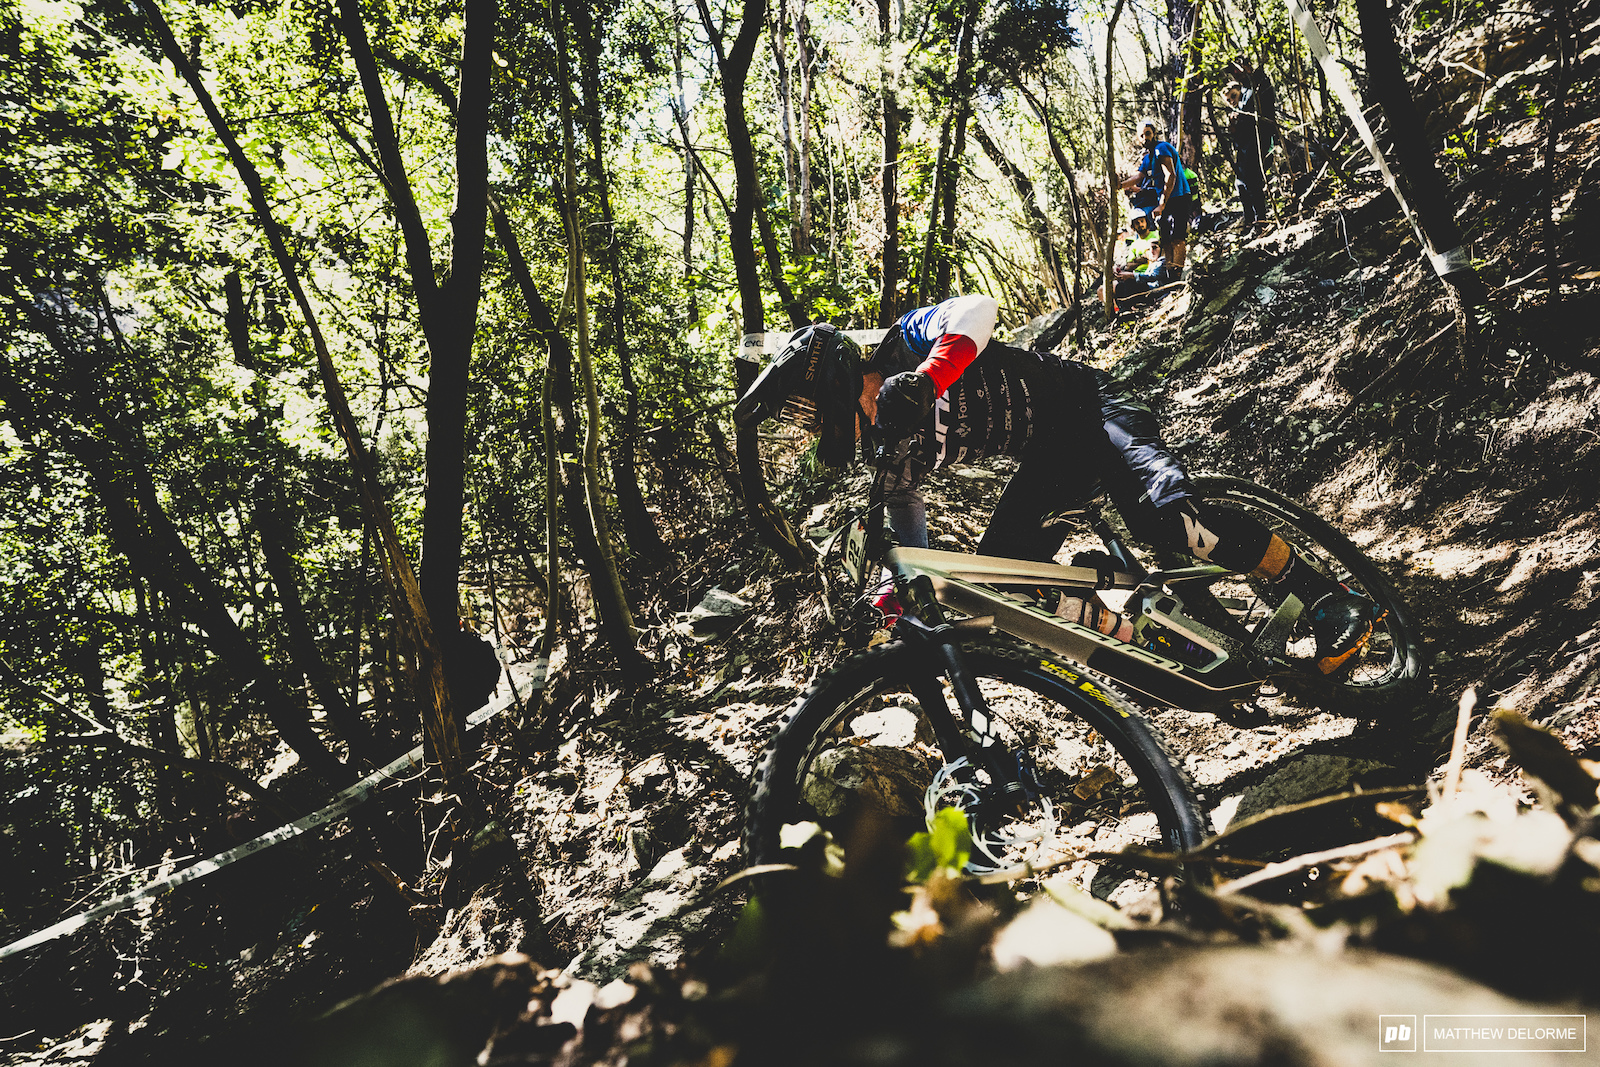 Theo Galy slaying switchbacks on the steeps of stage two. The dirt was phenomenal on those turns.